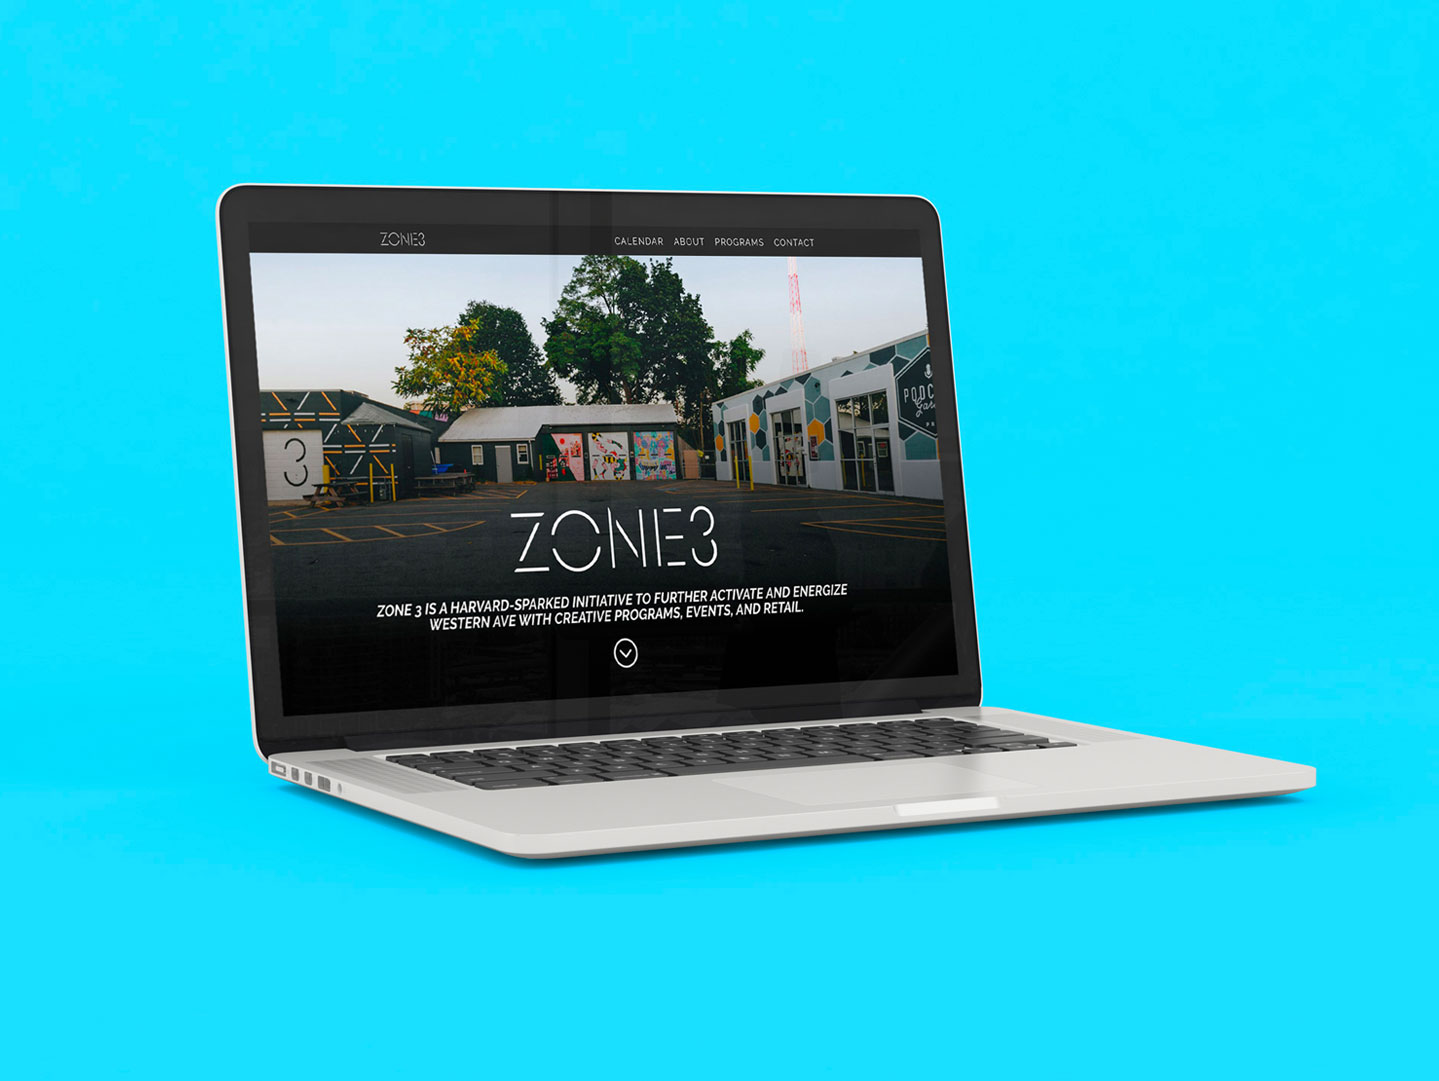 Zone 3 Website Mockup